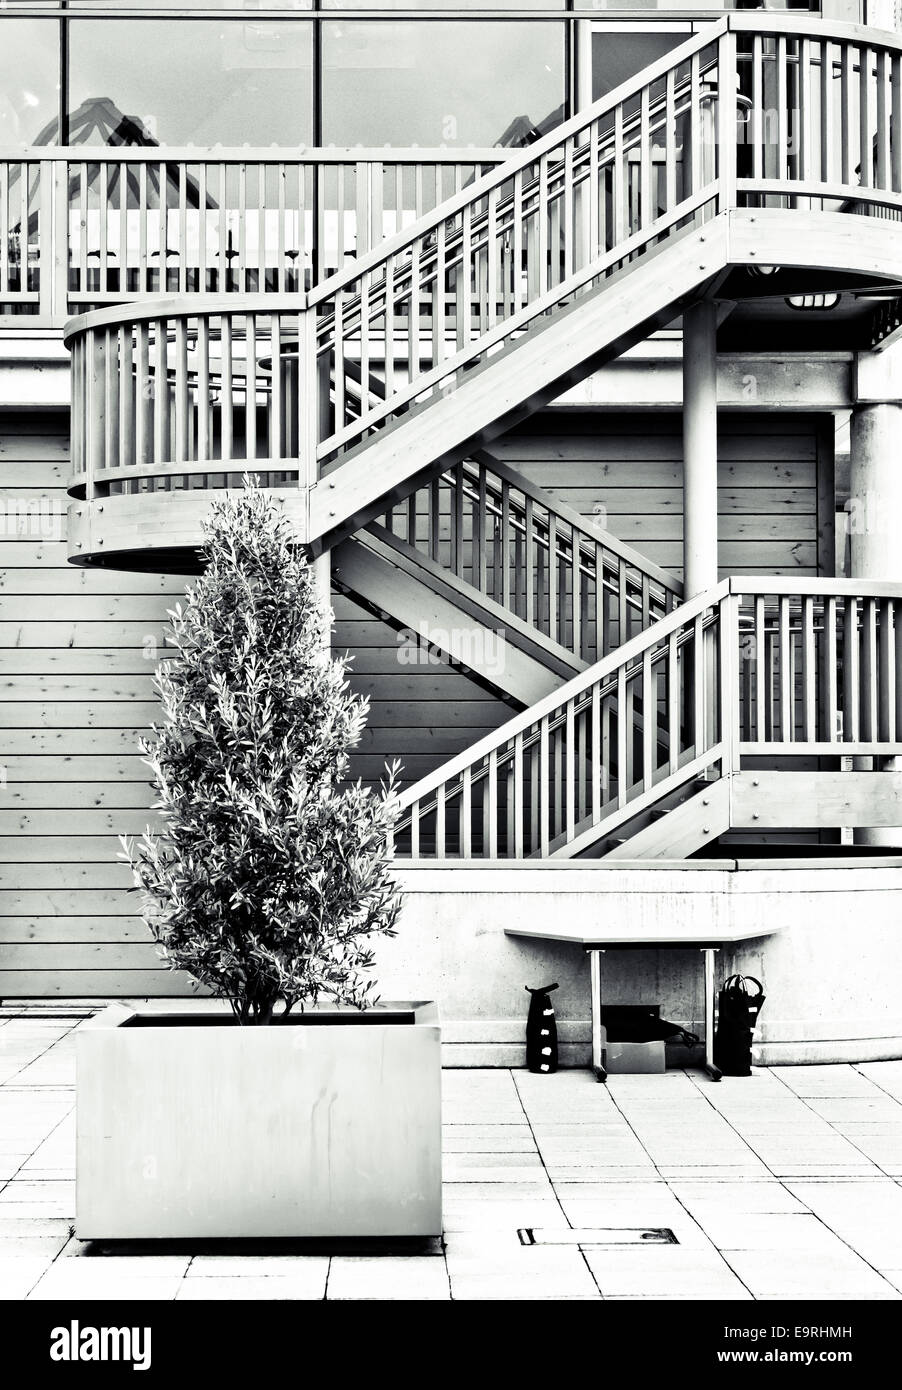 Modern architecture in black and white tones - Stock Image